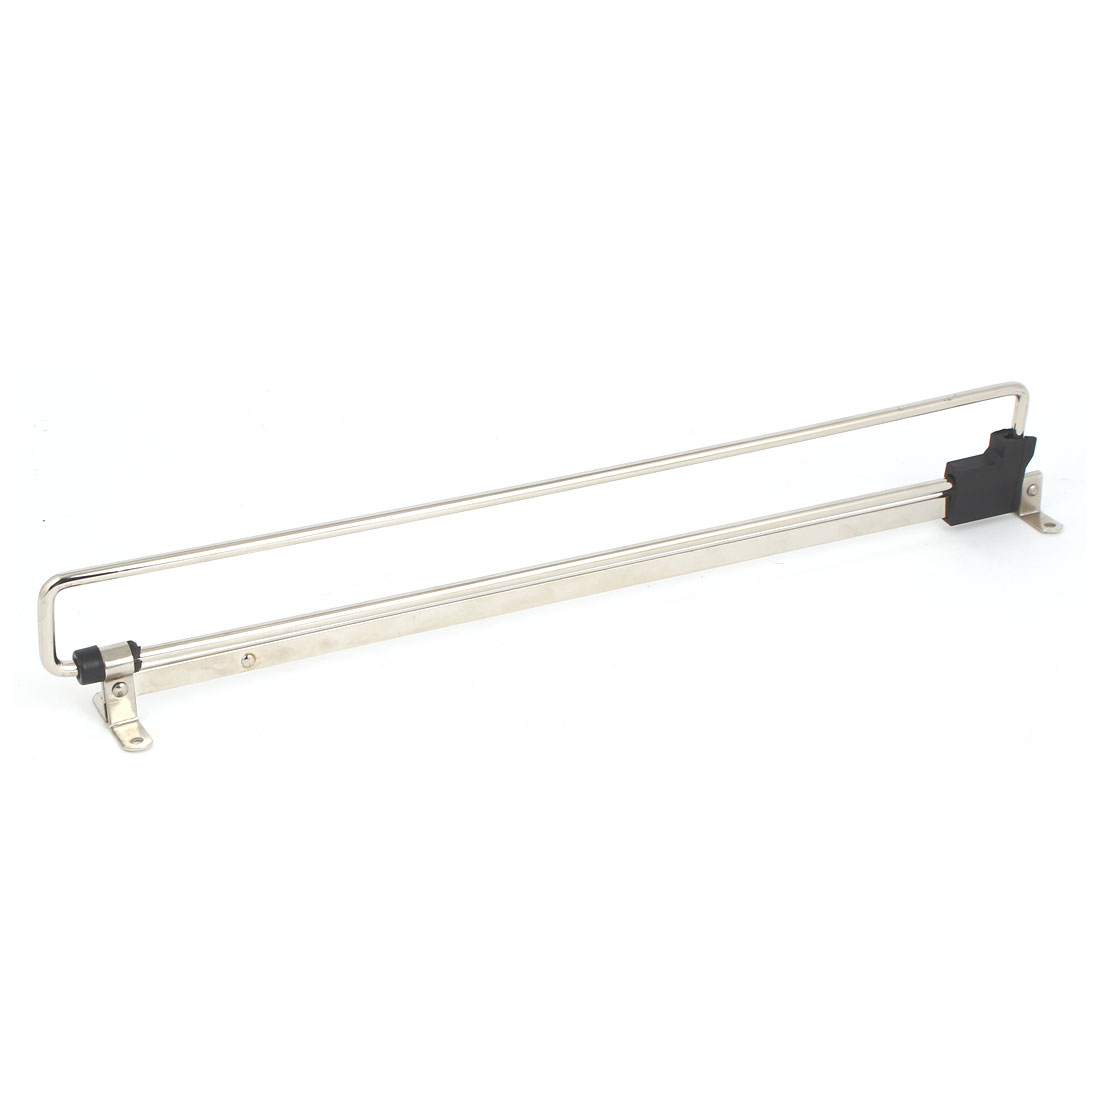 Wardrobe Closet Clothes Towel Metal Retractable Pull Out Rail Silver Tone 400mm Length